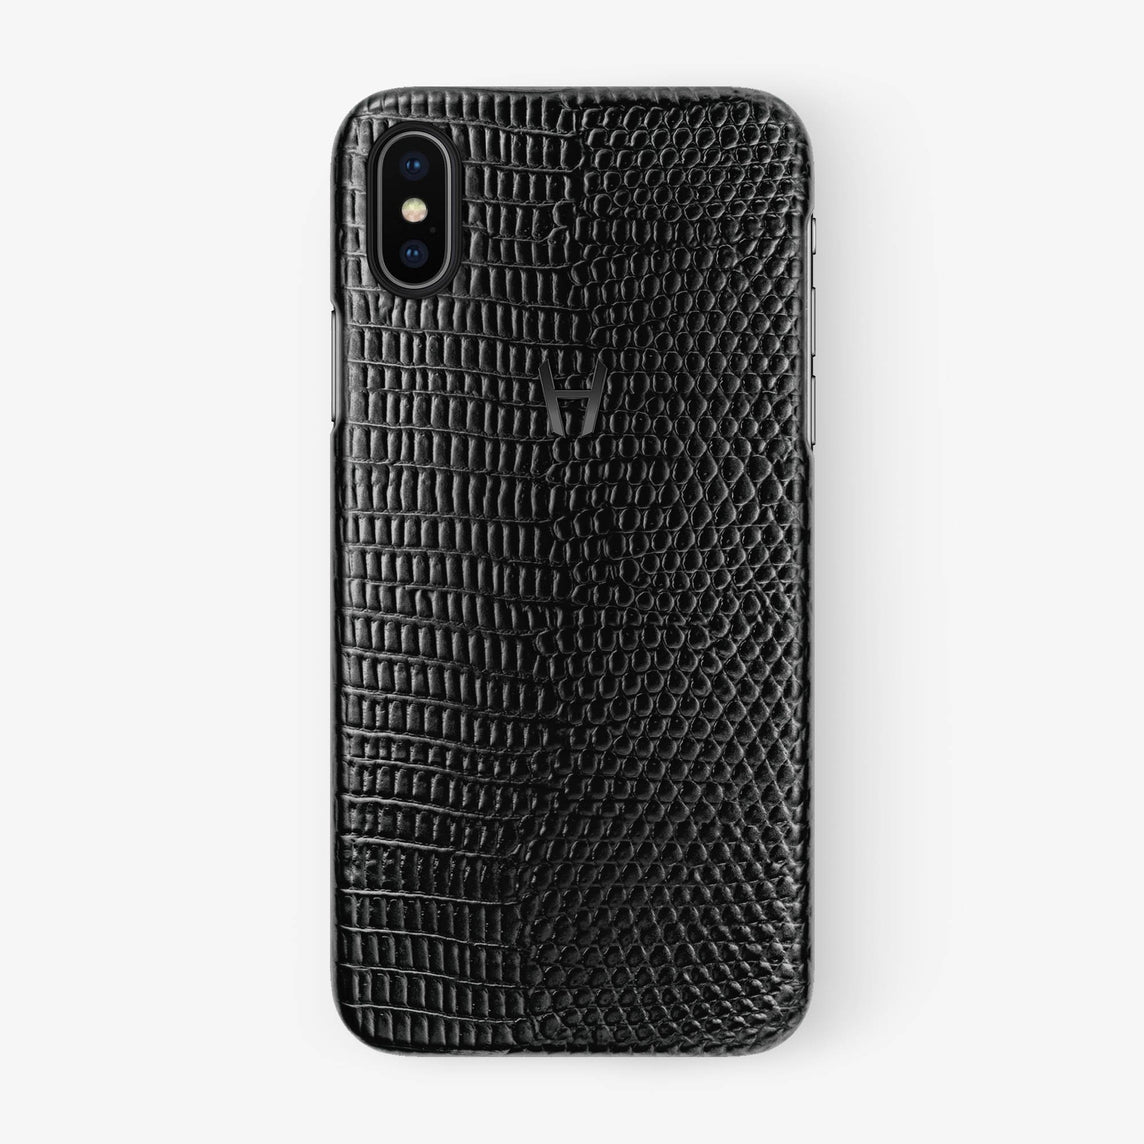 Black Lizard iPhone Case for iPhone X finishing black - Hadoro Luxury Cases